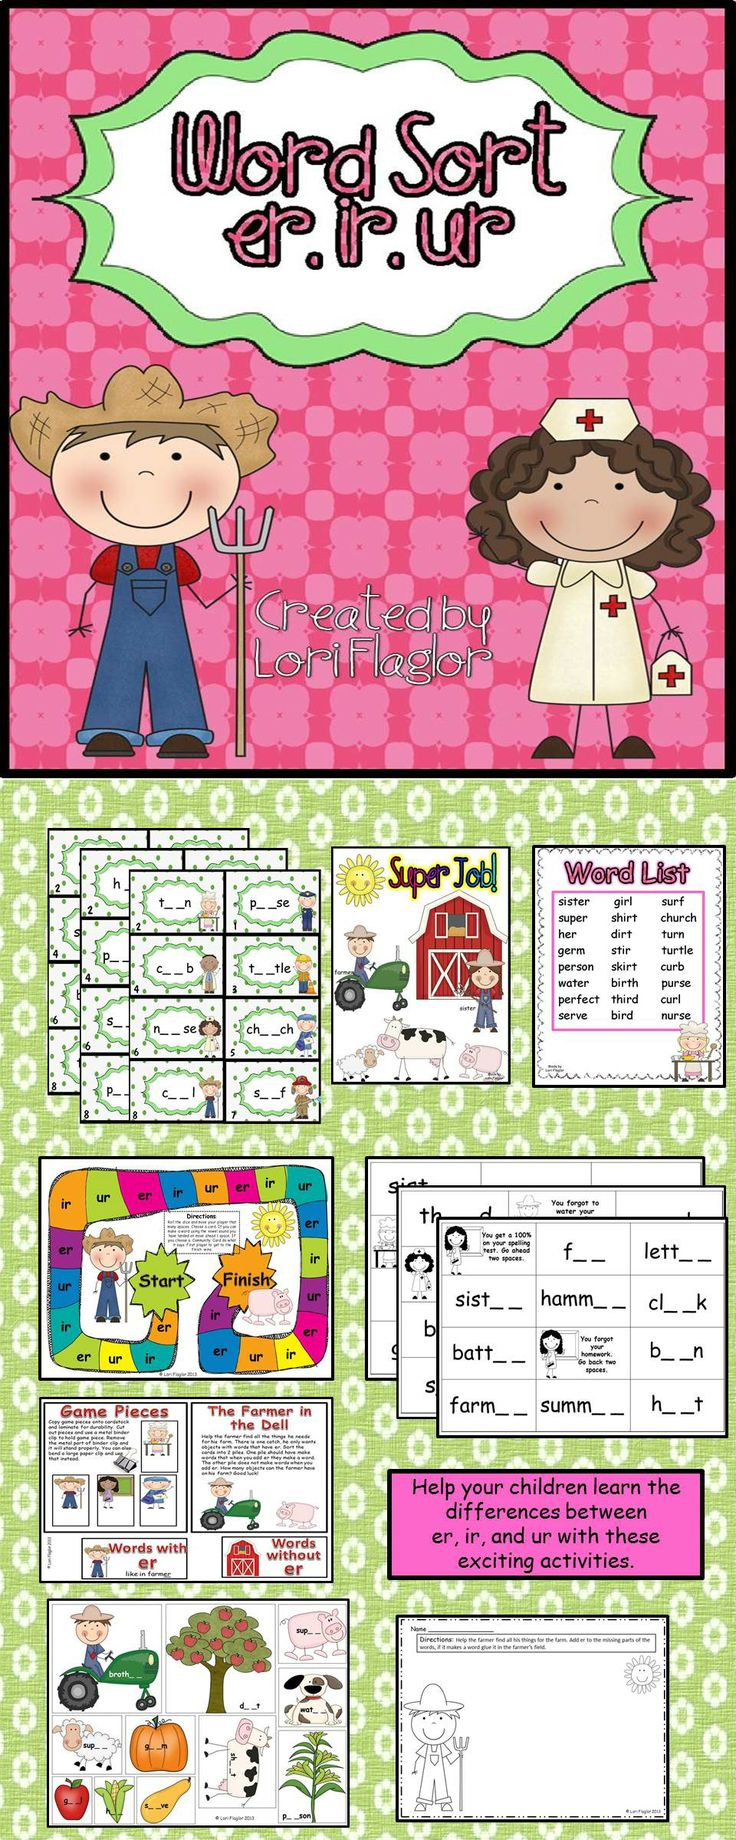 Workbooks words with er ir ur worksheets : 89 best READ~R CONTROLED images on Pinterest | Word games, Word ...